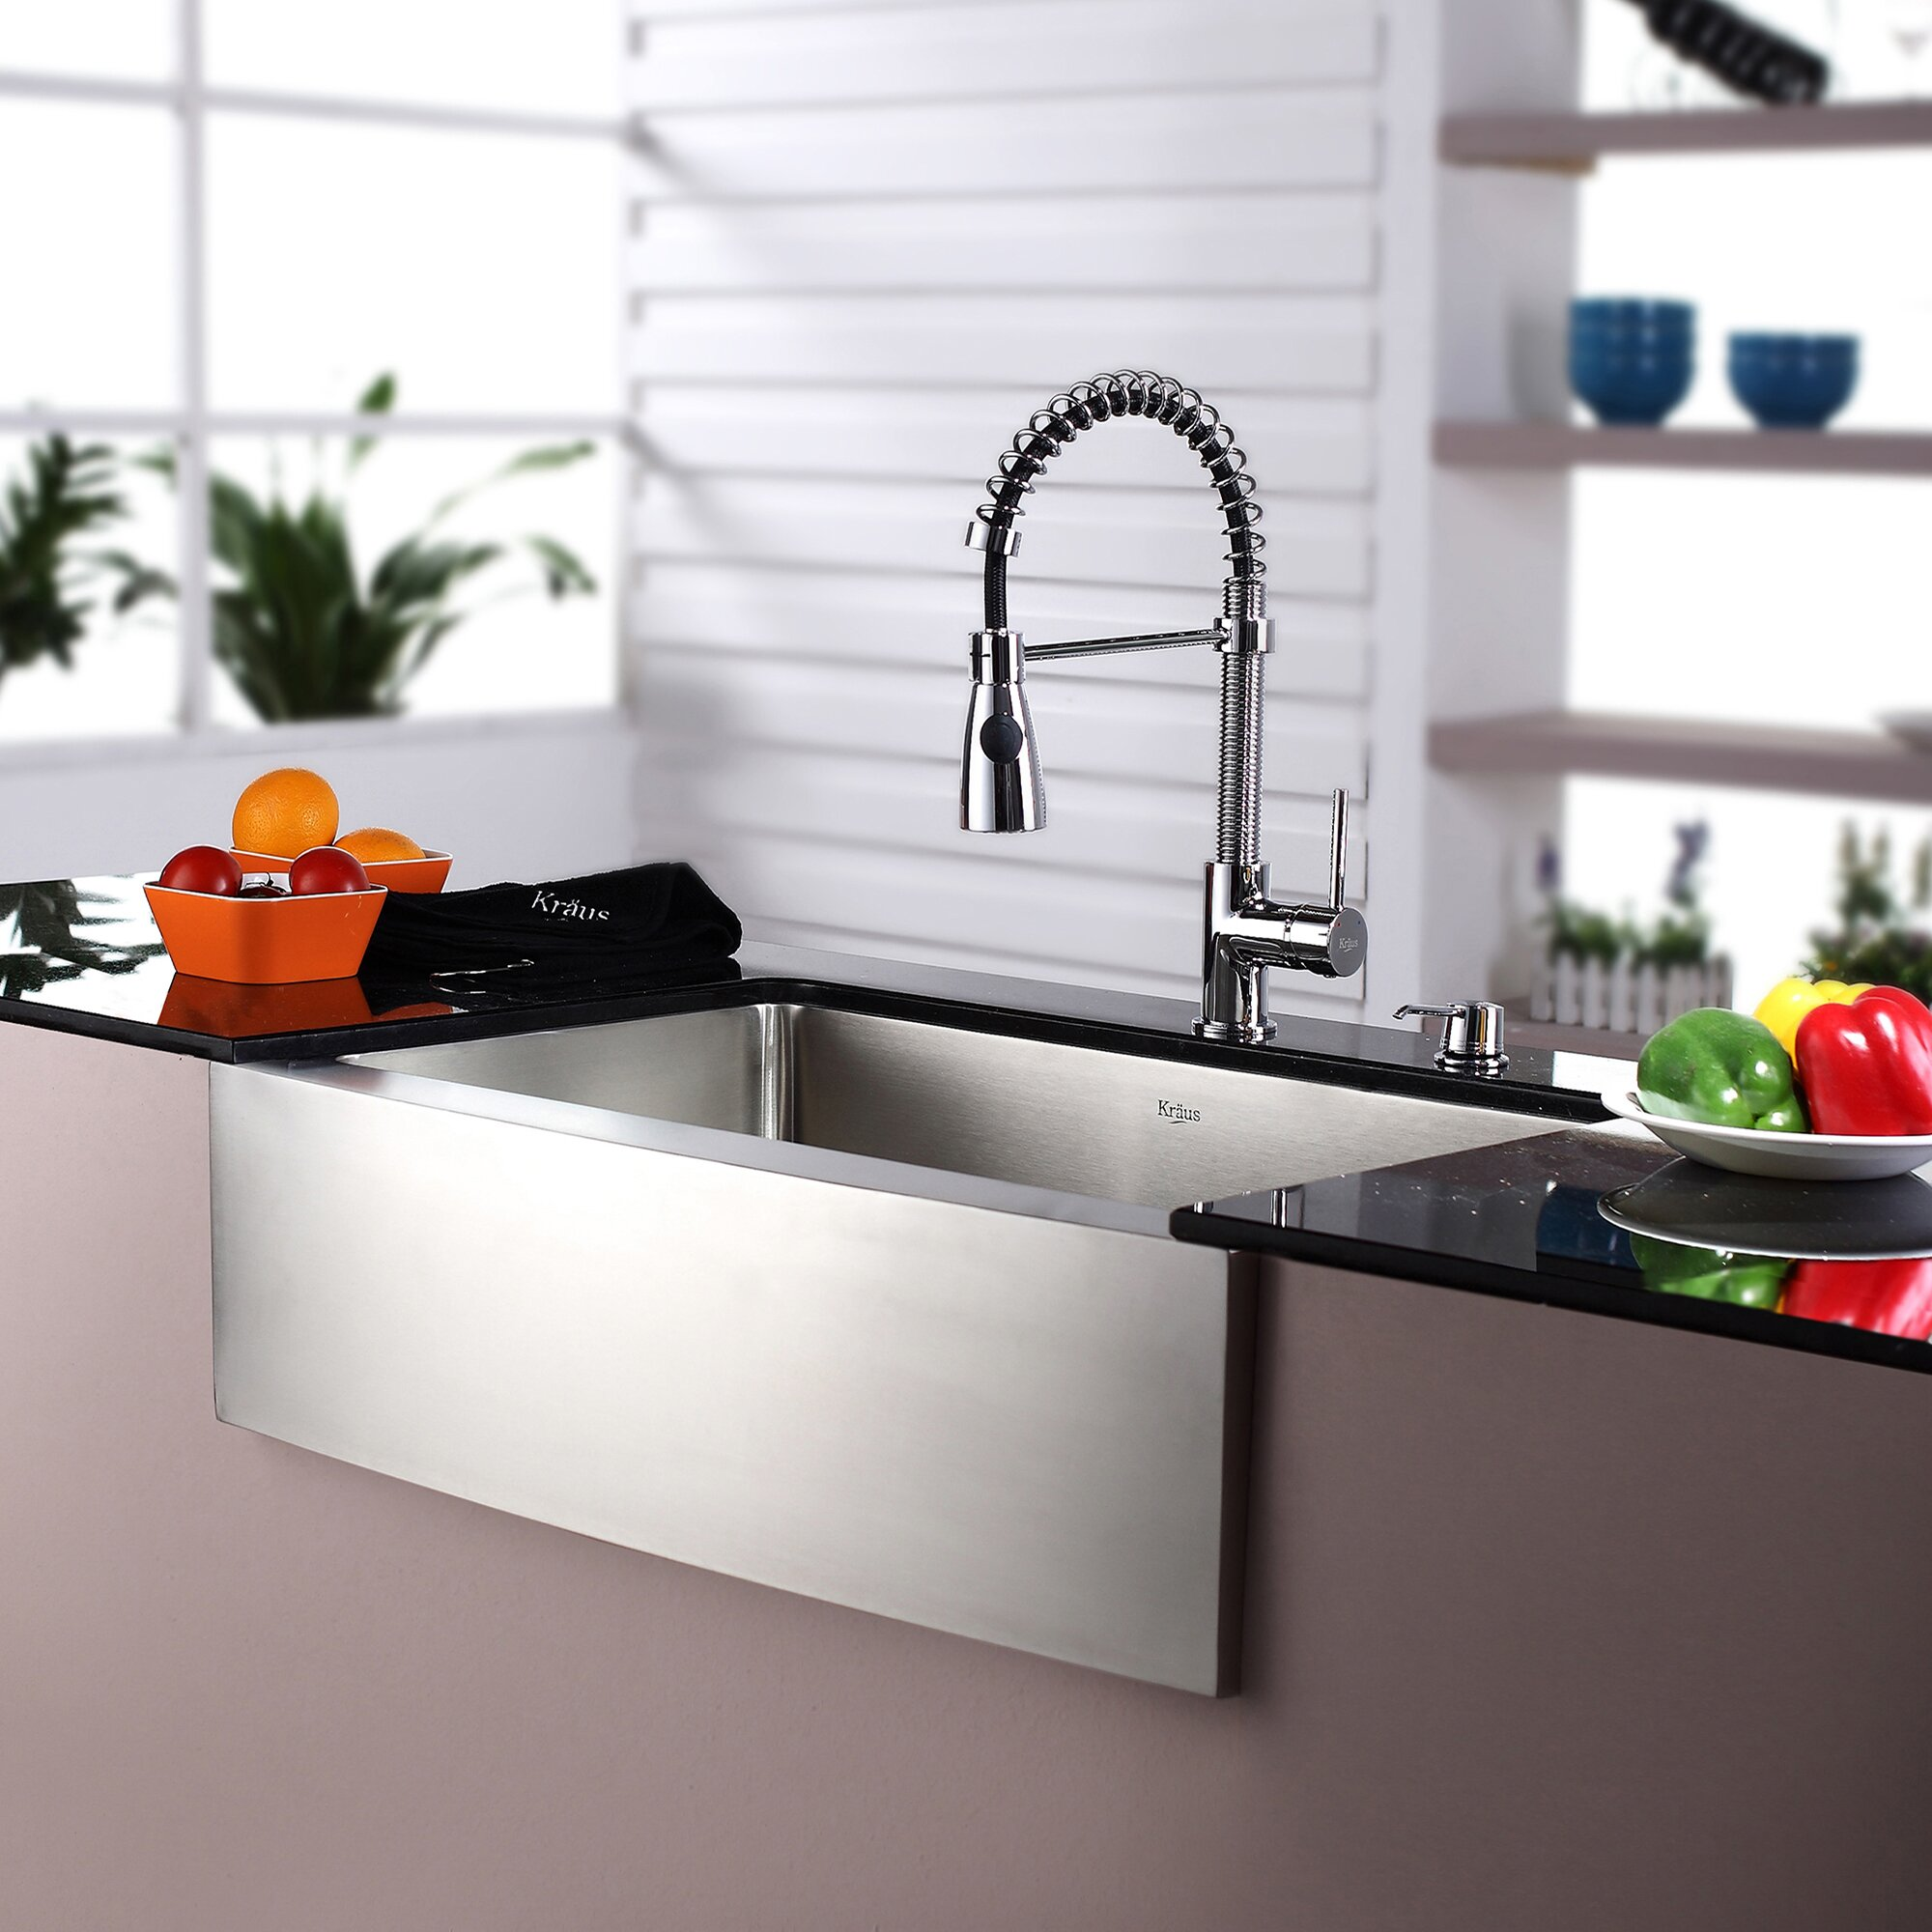 "Kitchen Sink Kraus: Kraus Kraus 30"" Farmhouse Stainless Steel 29.75"" X 20"